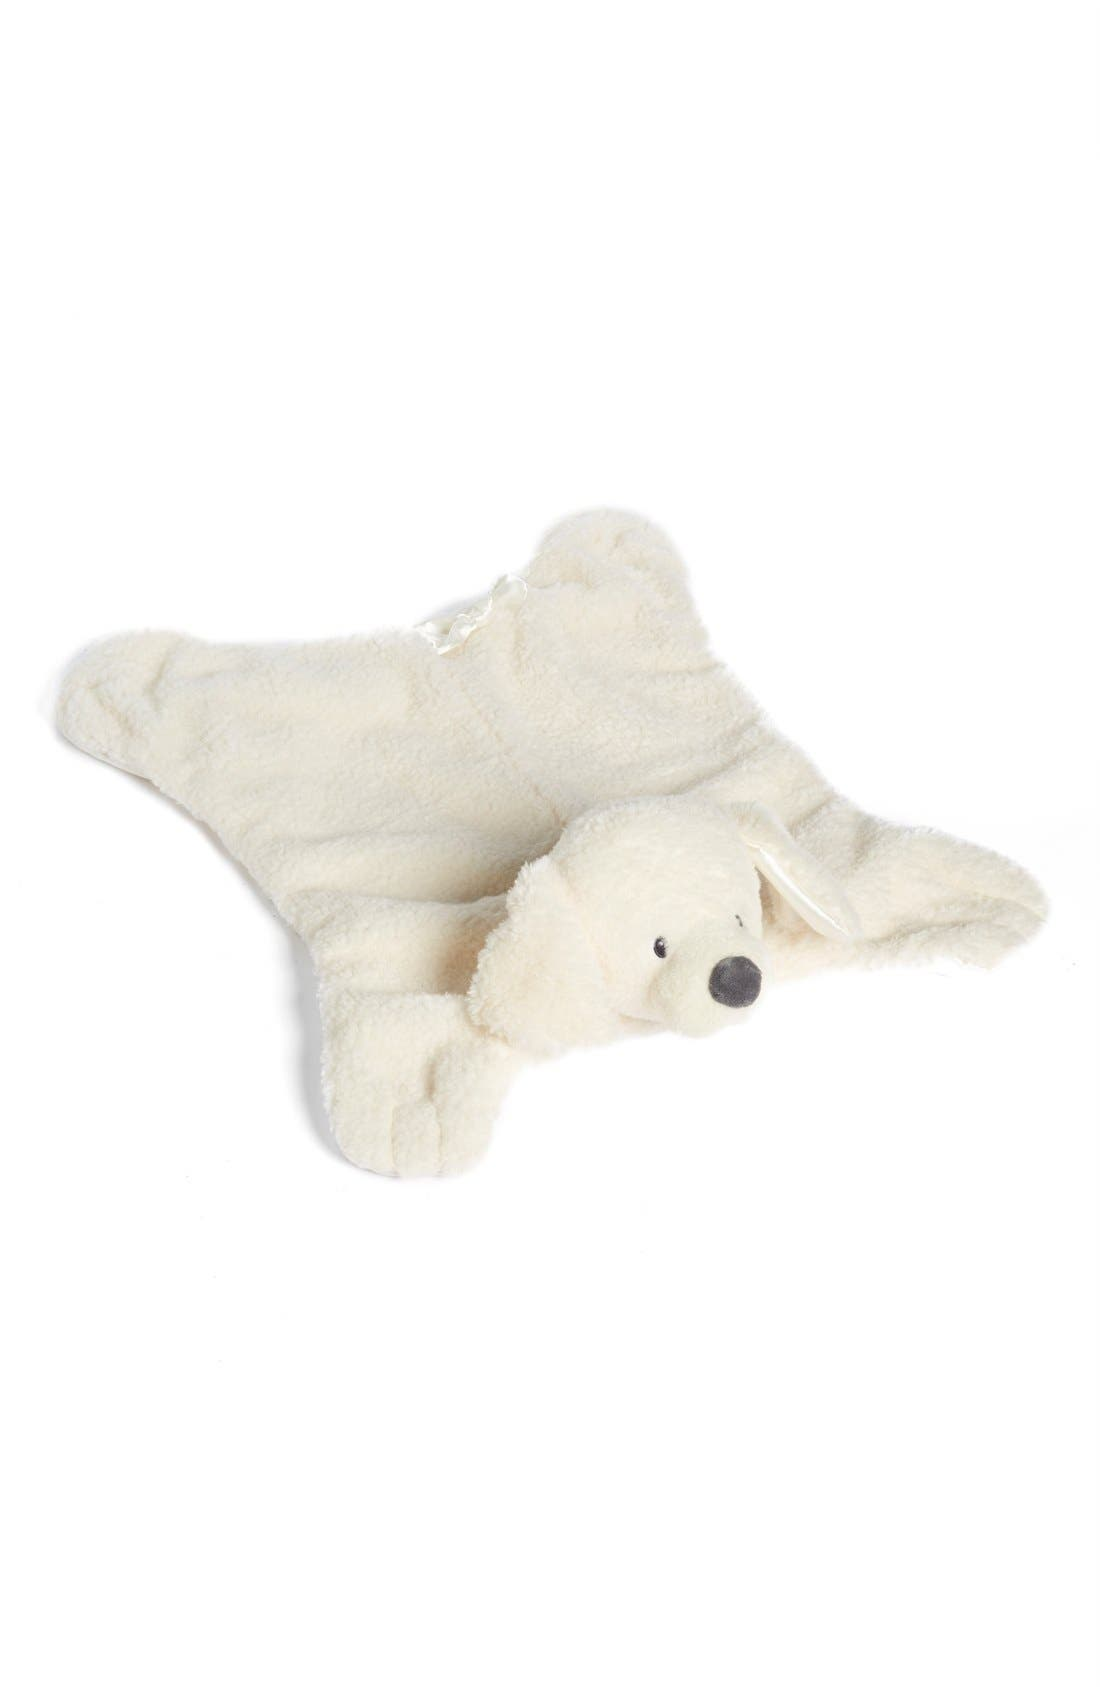 Main Image - Gund 'Comfy Cozy' Plush Toy